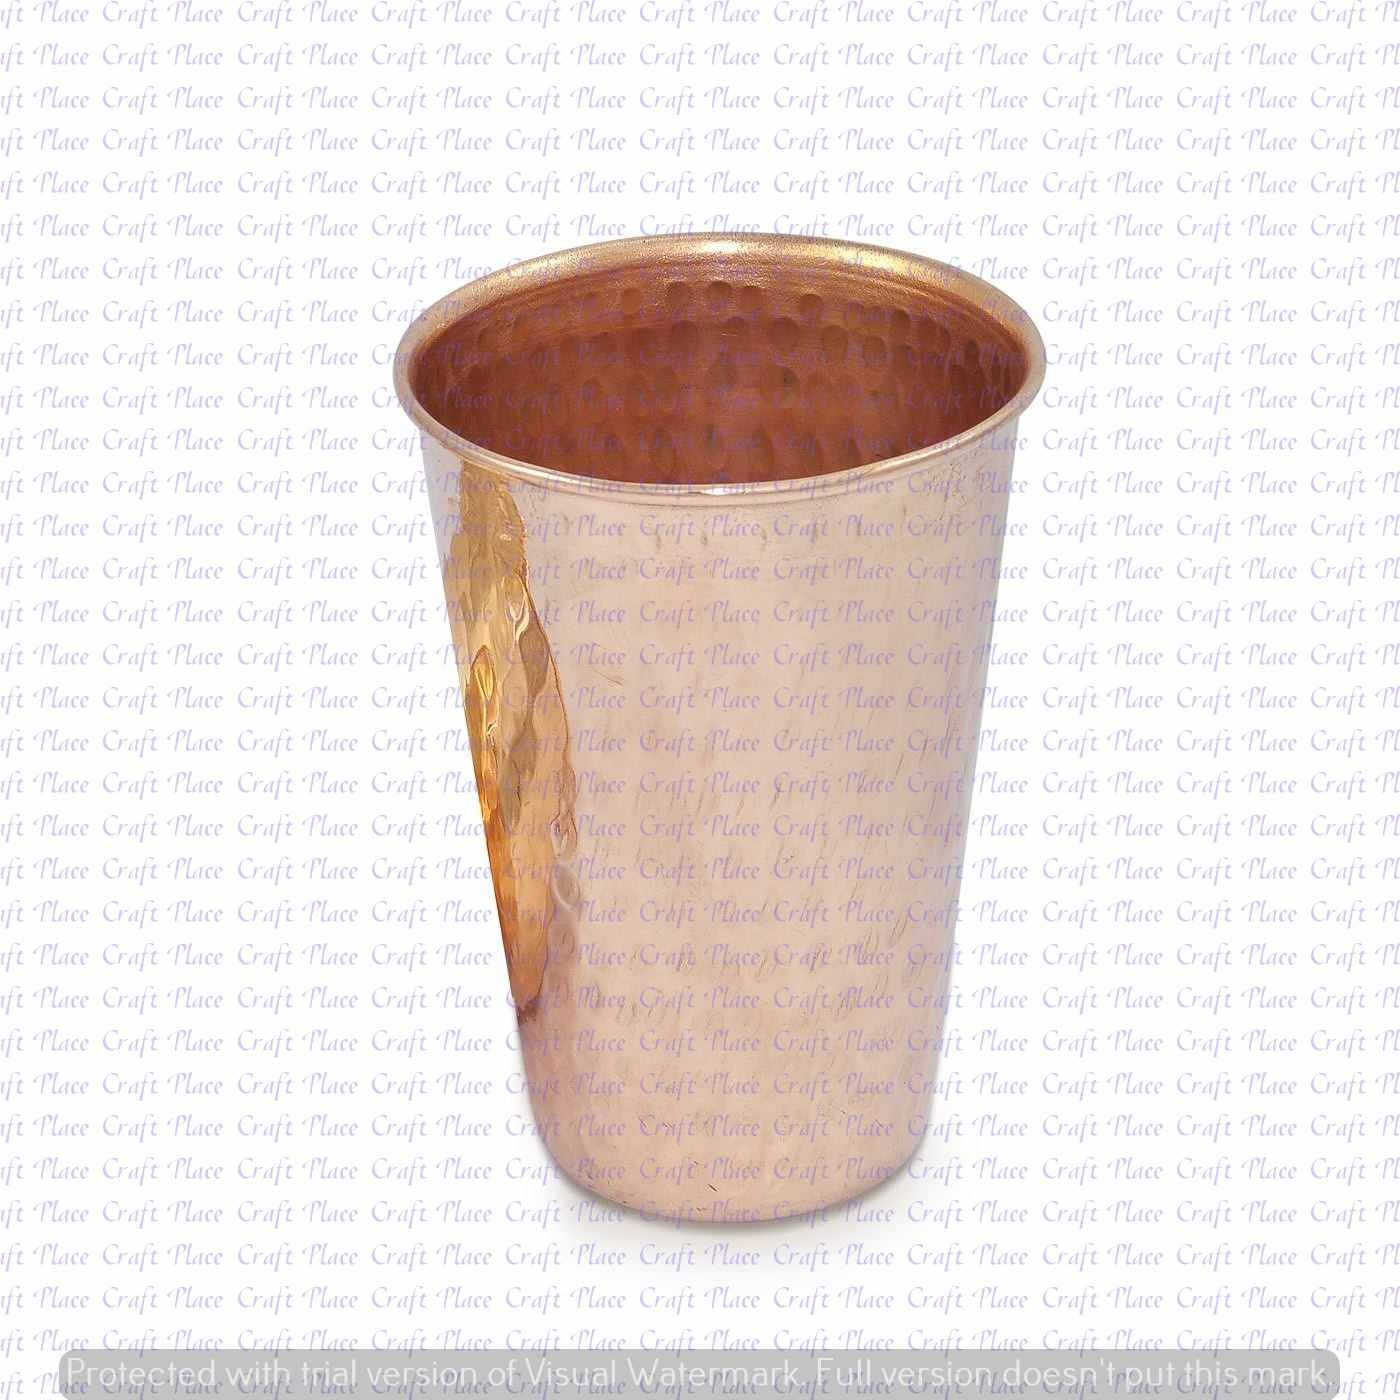 India Solid Copper Hammered Drinking Tumbler For Ayurvedic Health Benefits Craft place